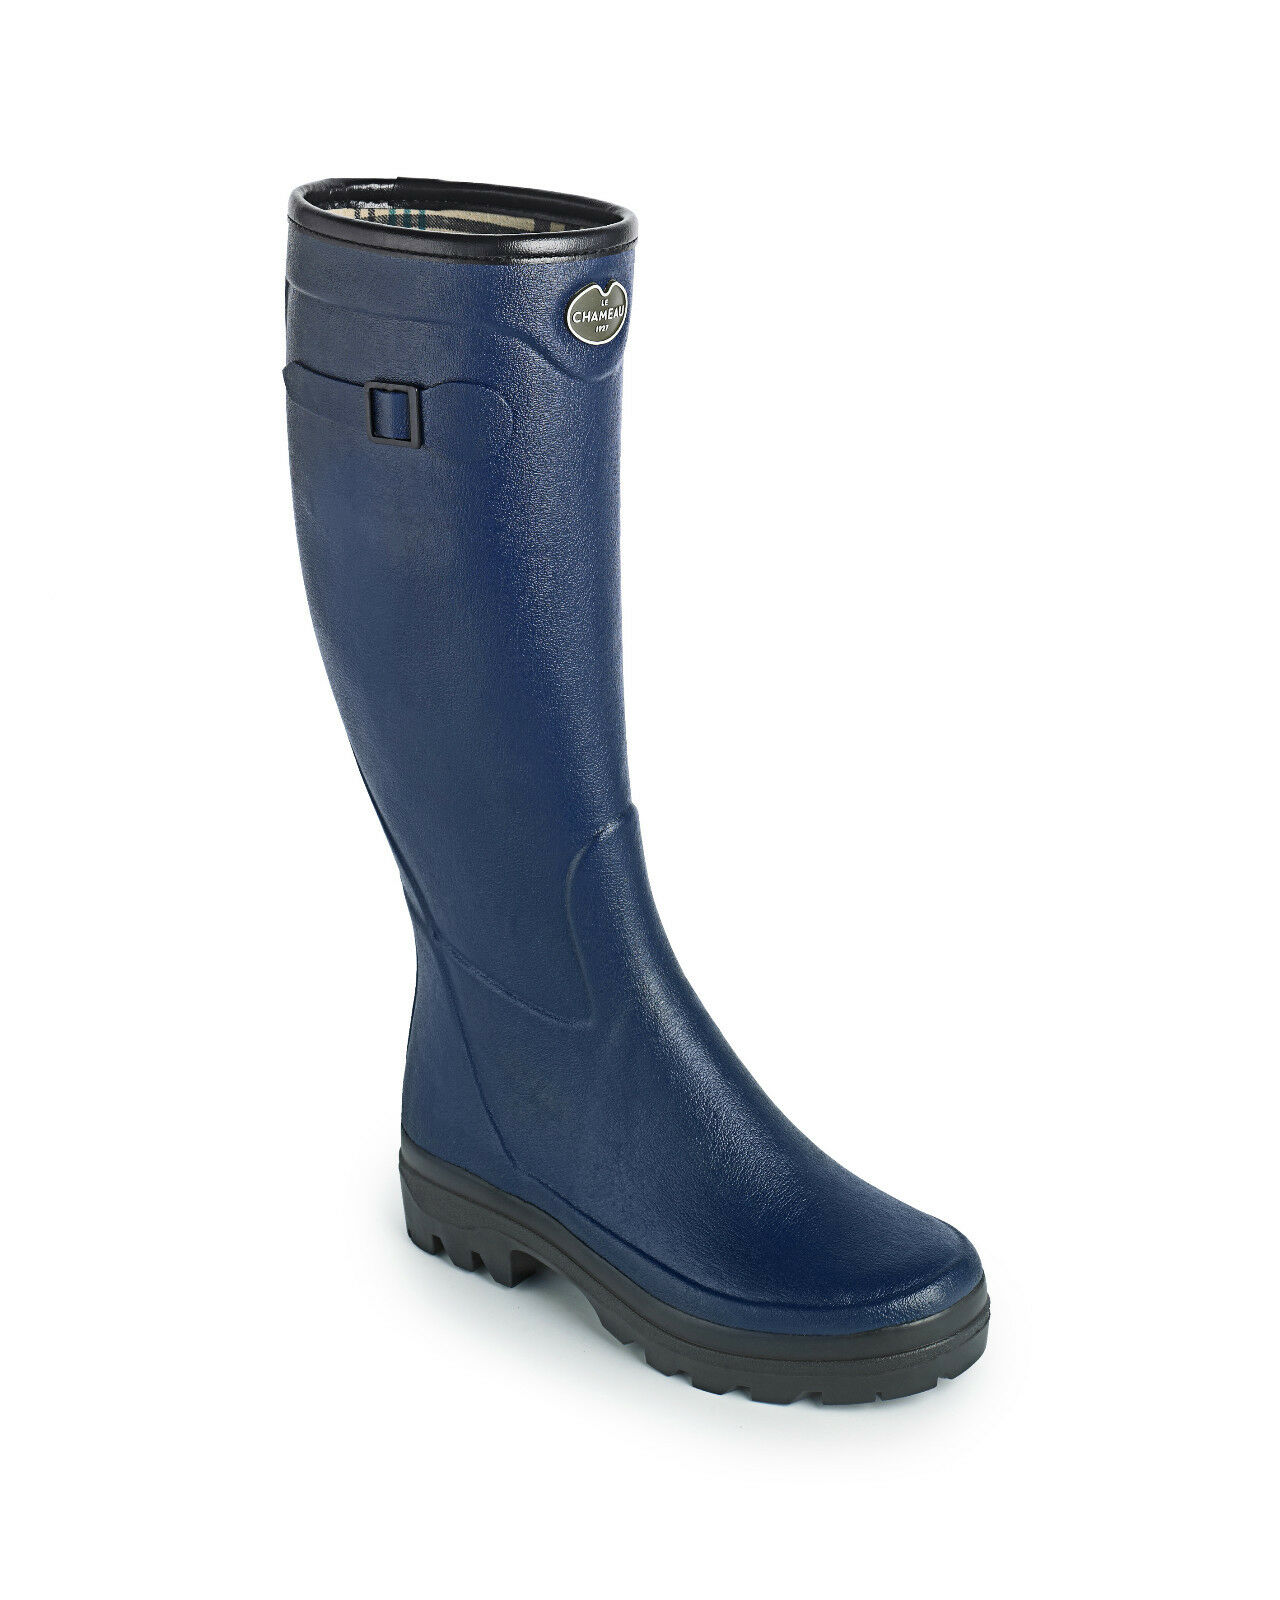 Ladies Le Chameau Country Coloured Wellington Boots - new - all sizes